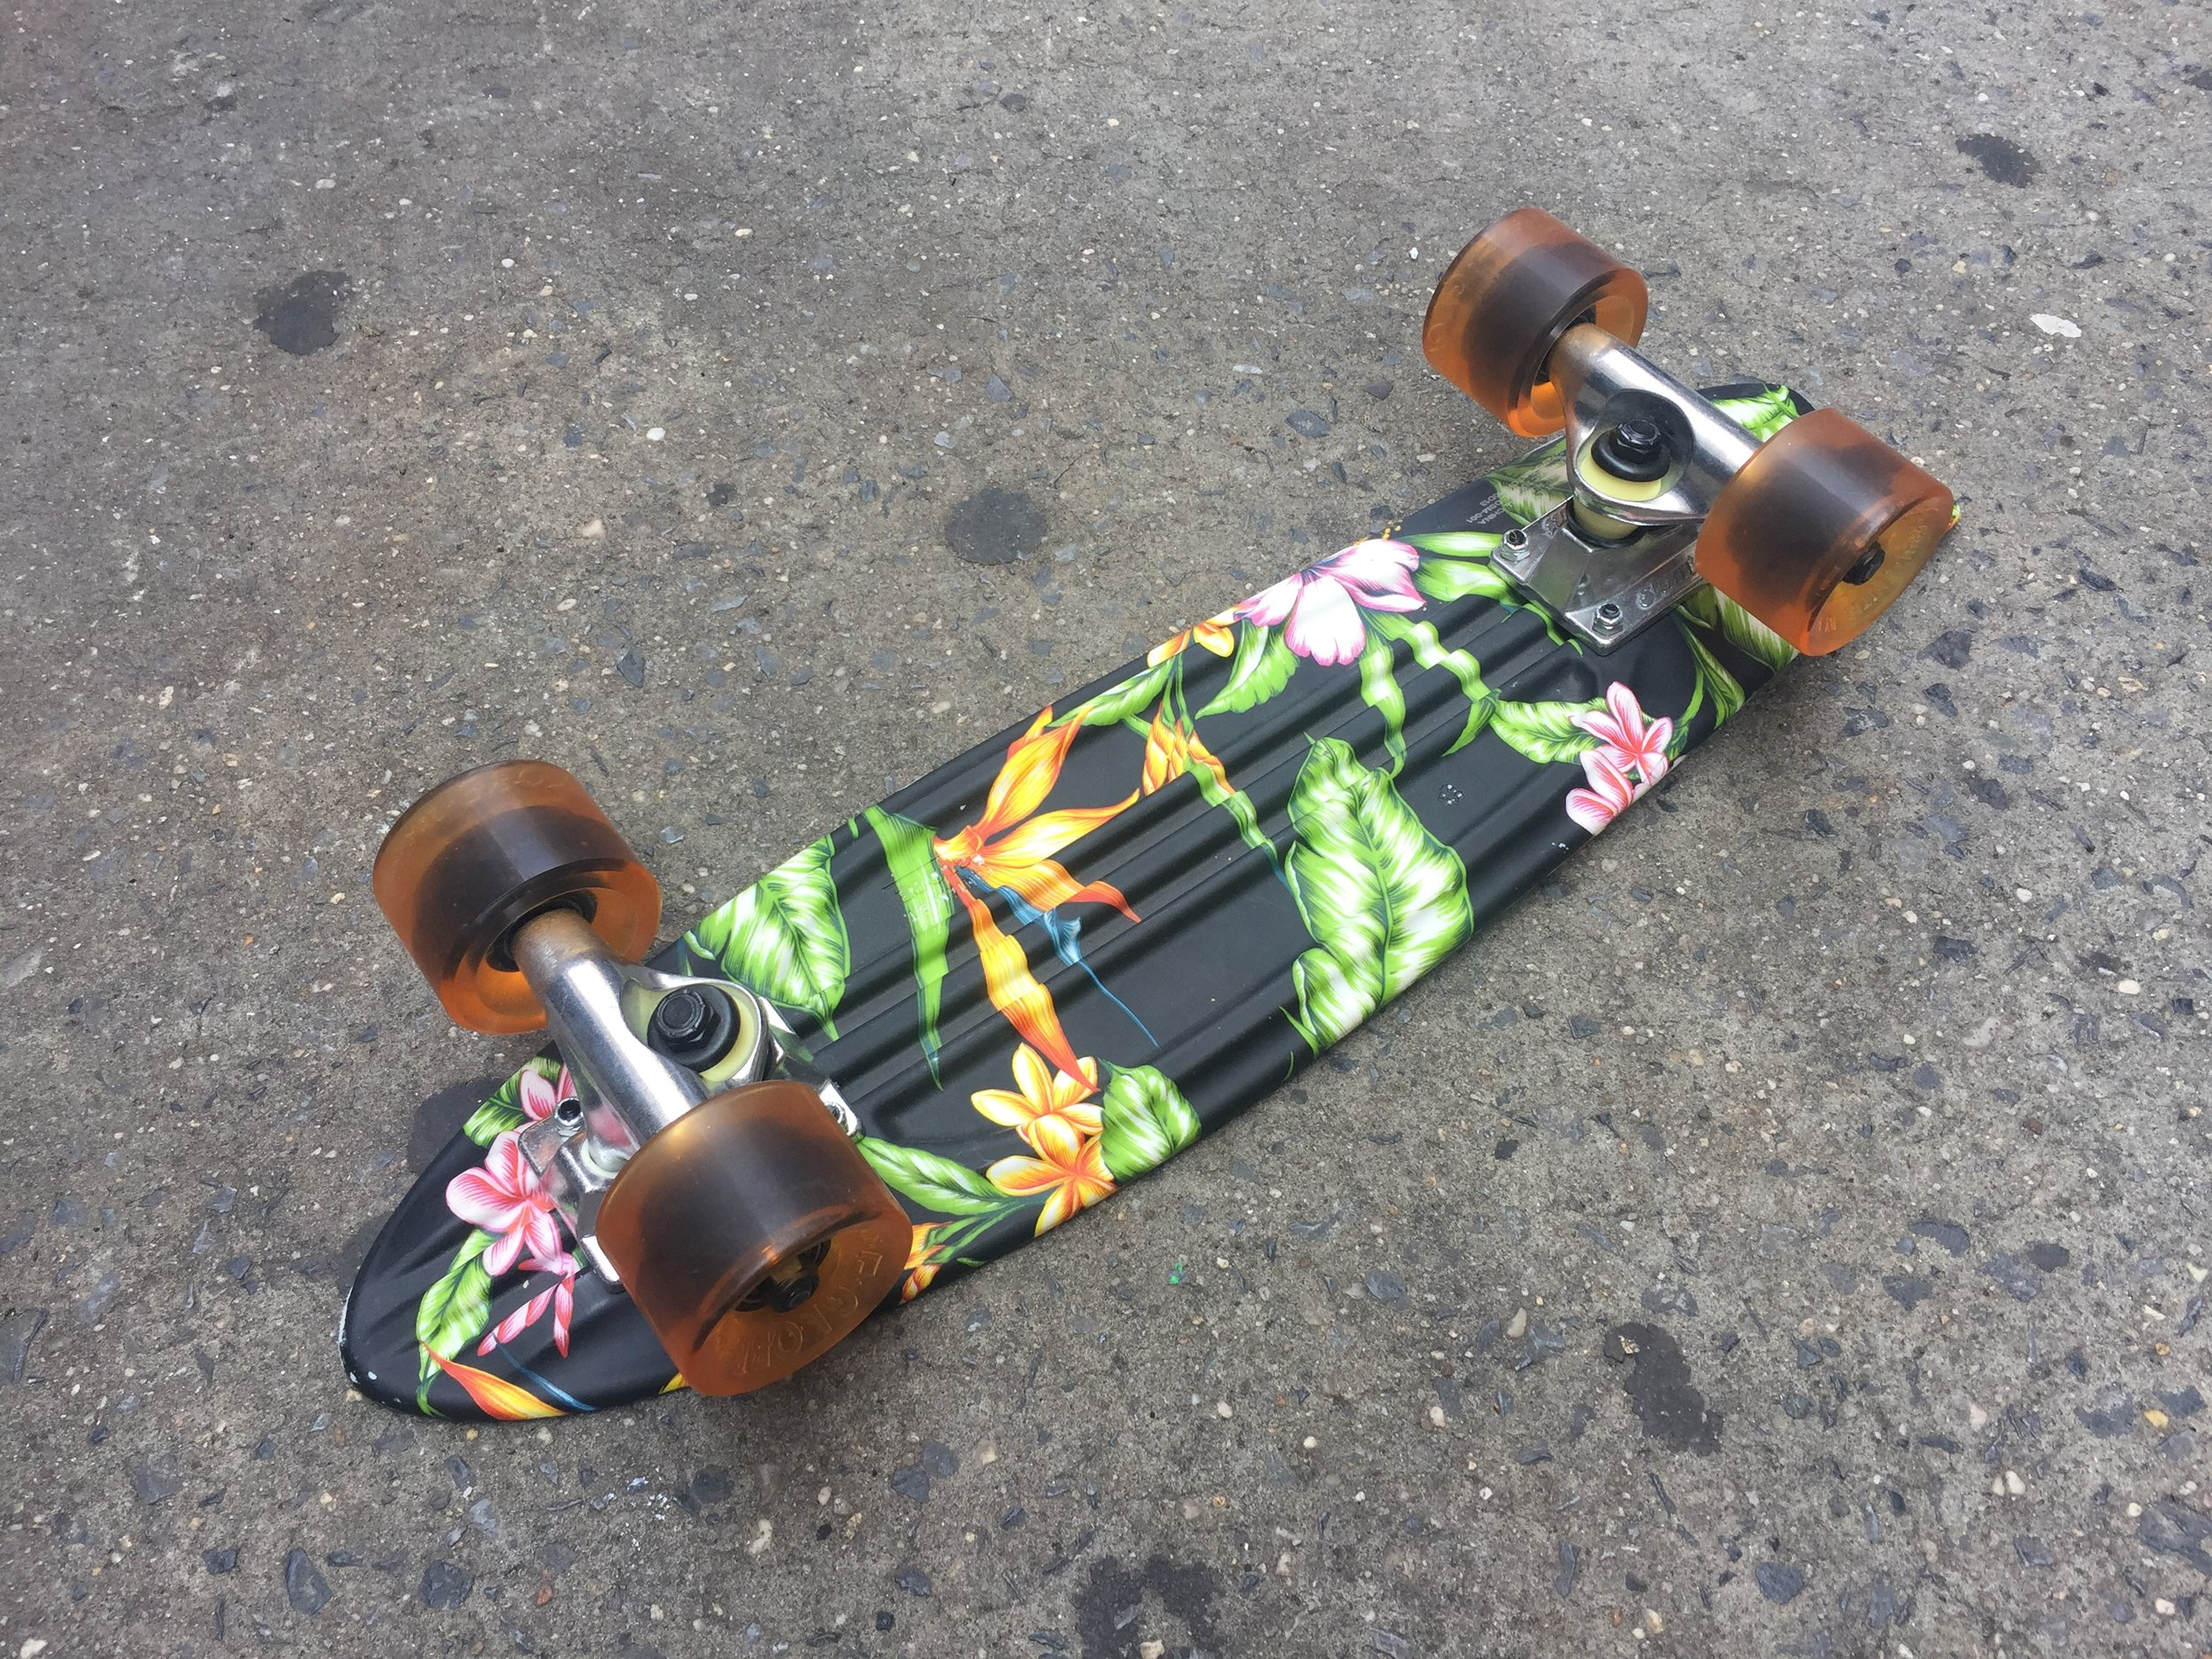 SKATEBOARD 8 BOTTOM